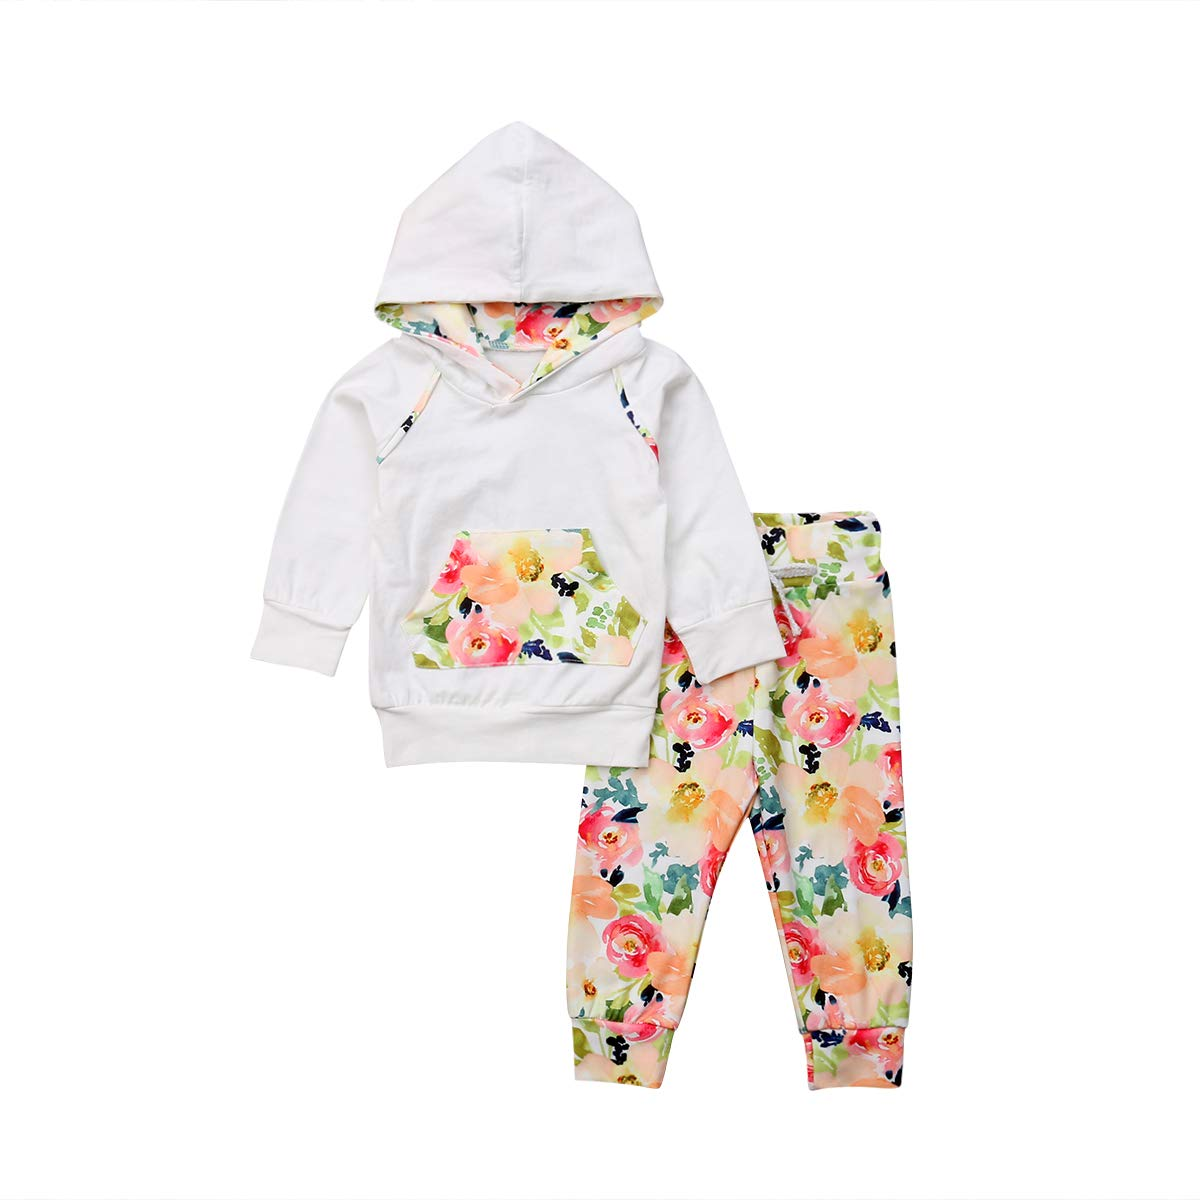 XARAZA Baby Boy Girl Long Sleeve Hoodie Jacket Romper Dinosaur Jumpsuit Outfits